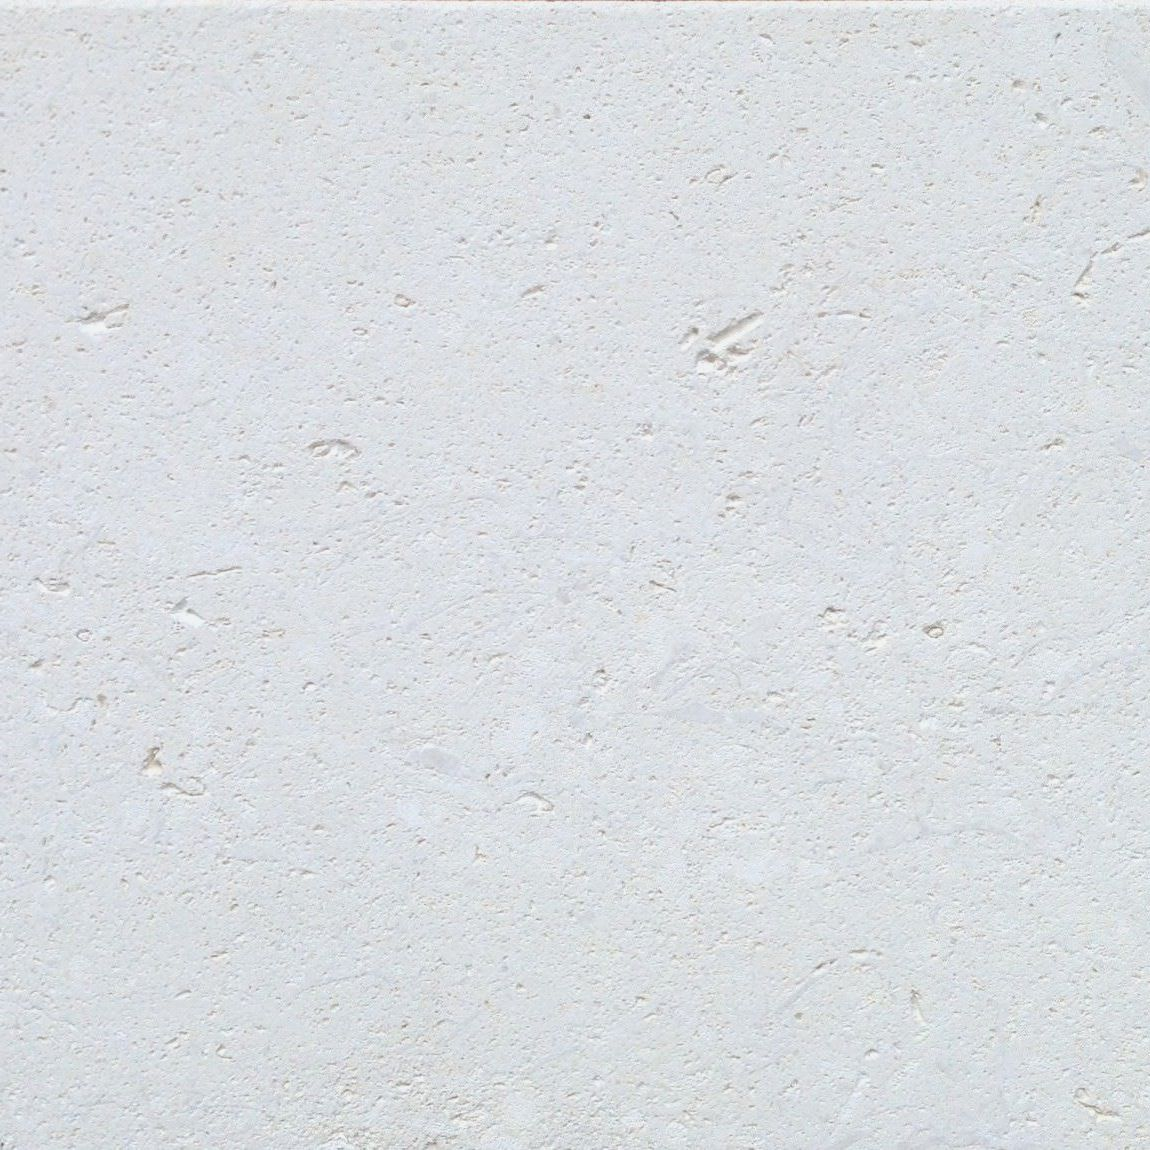 Table top texture - White Table Top Texture